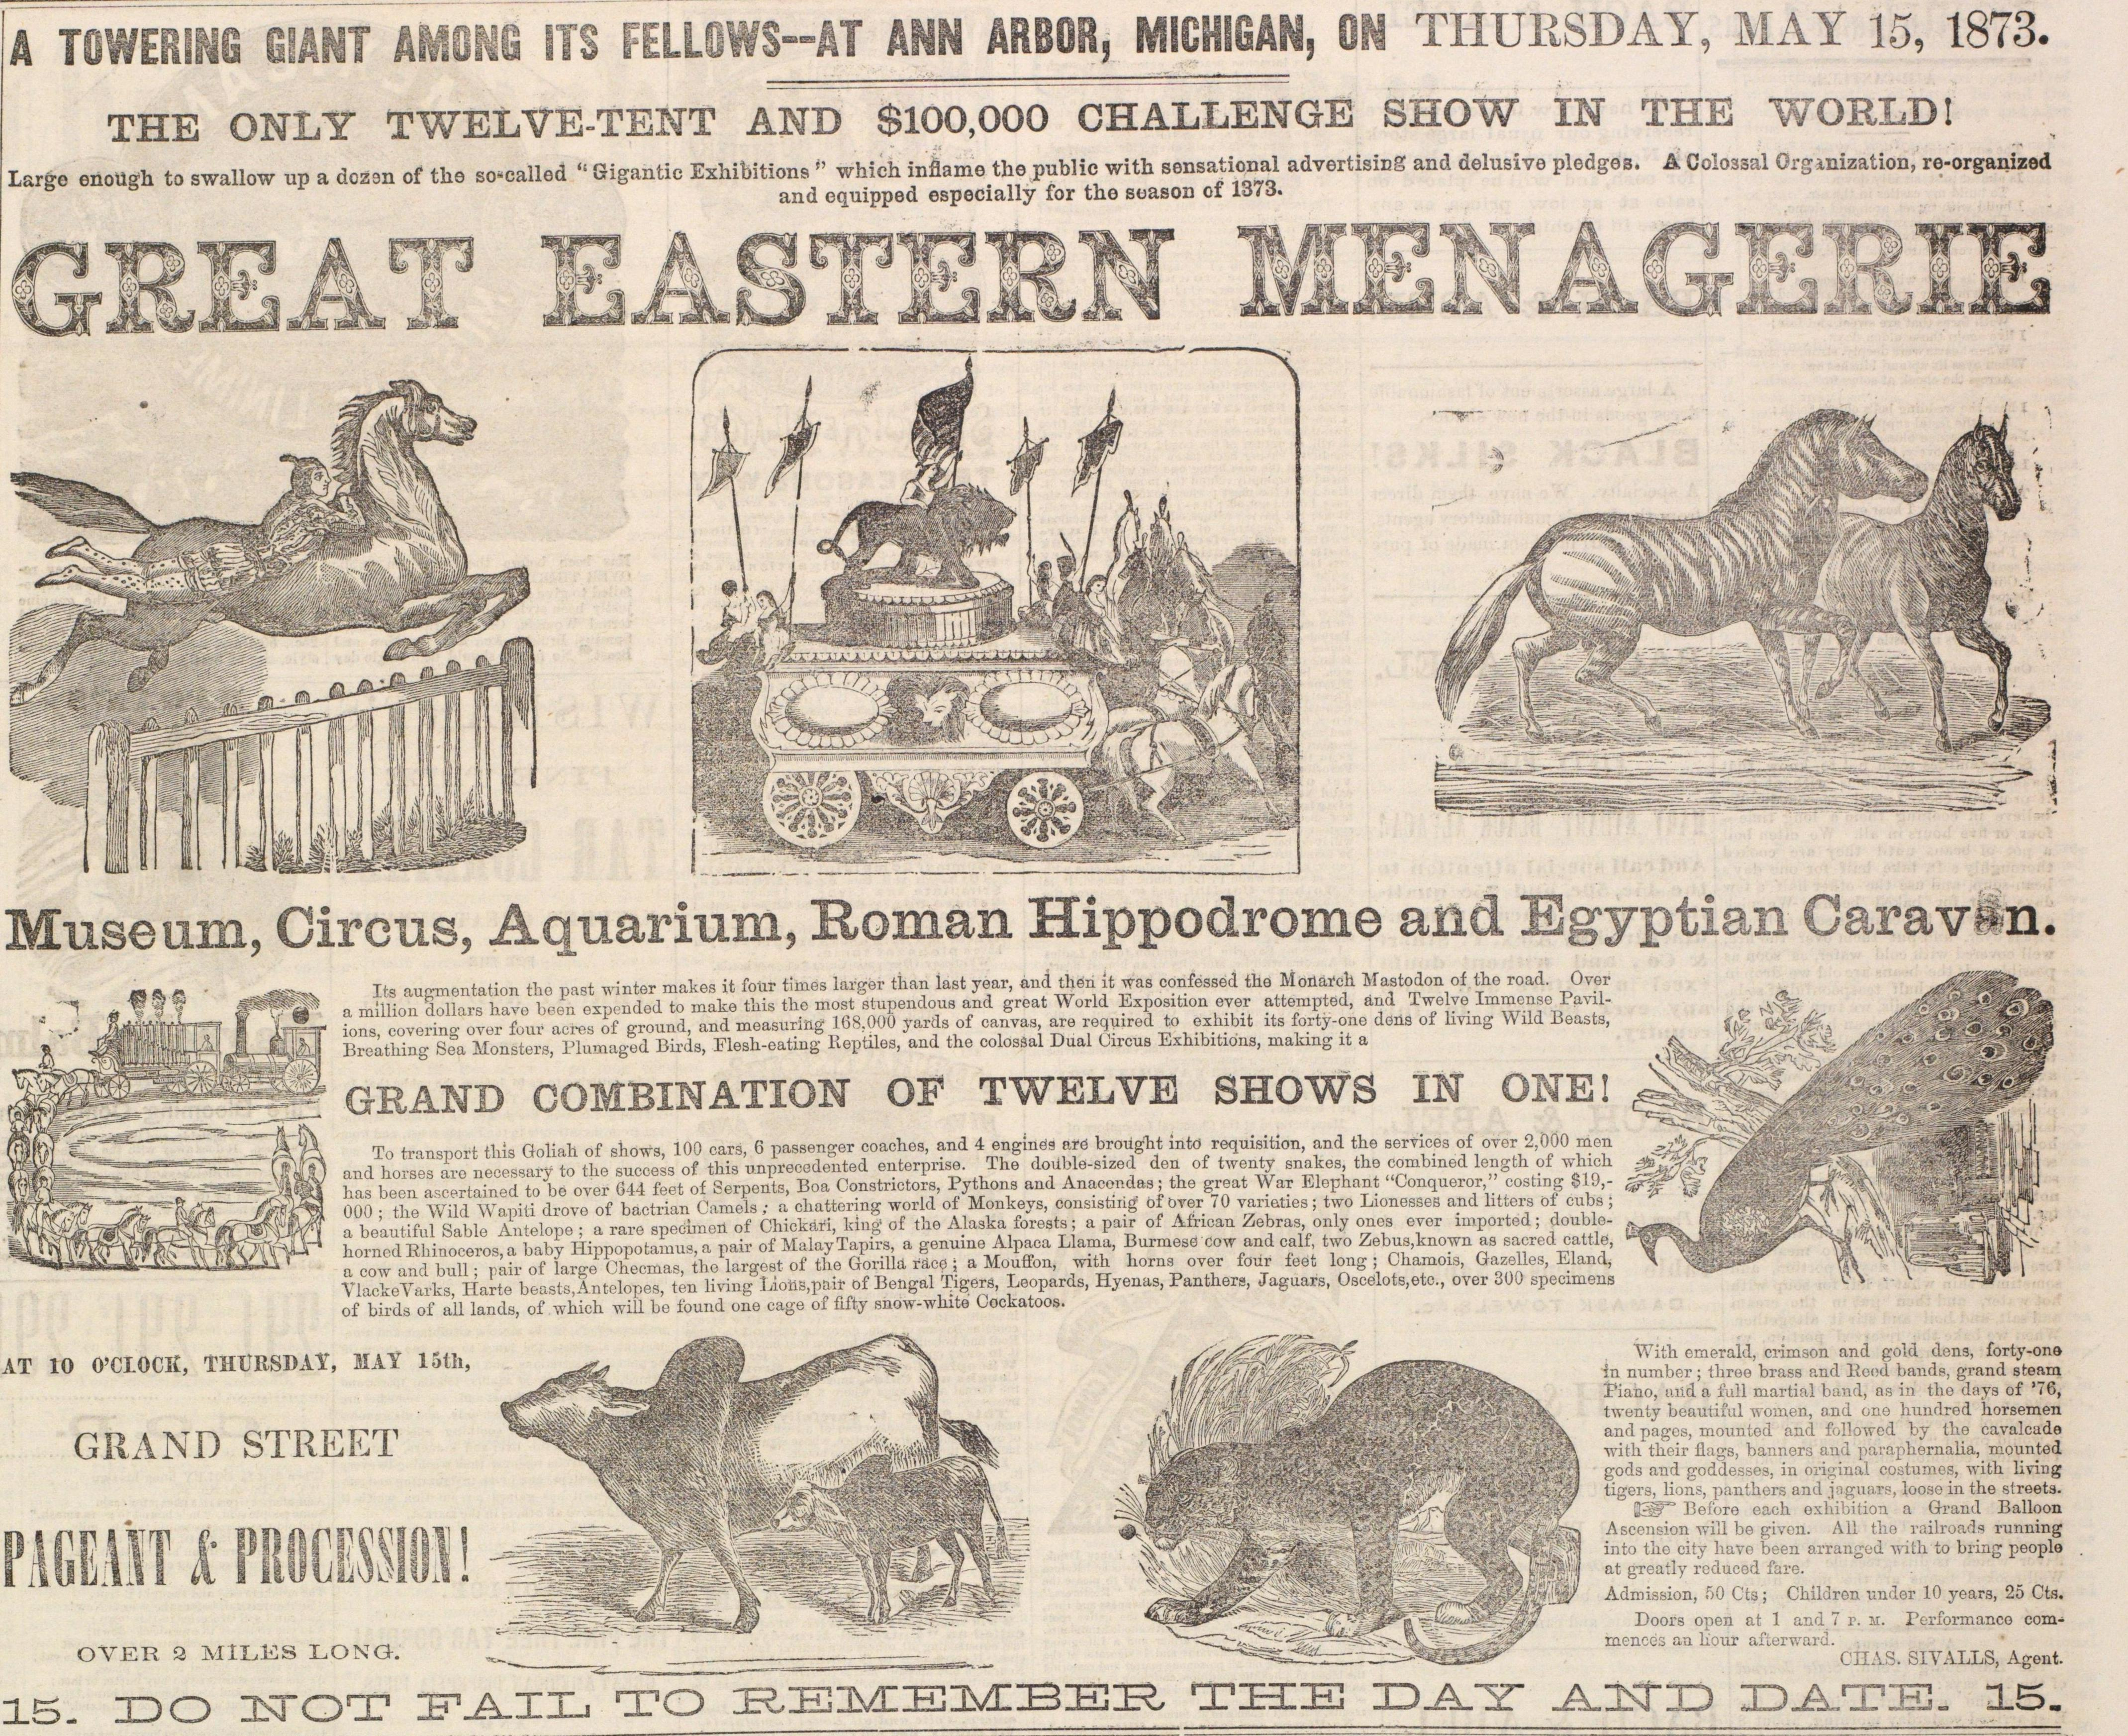 Great Eastern Menagerie image